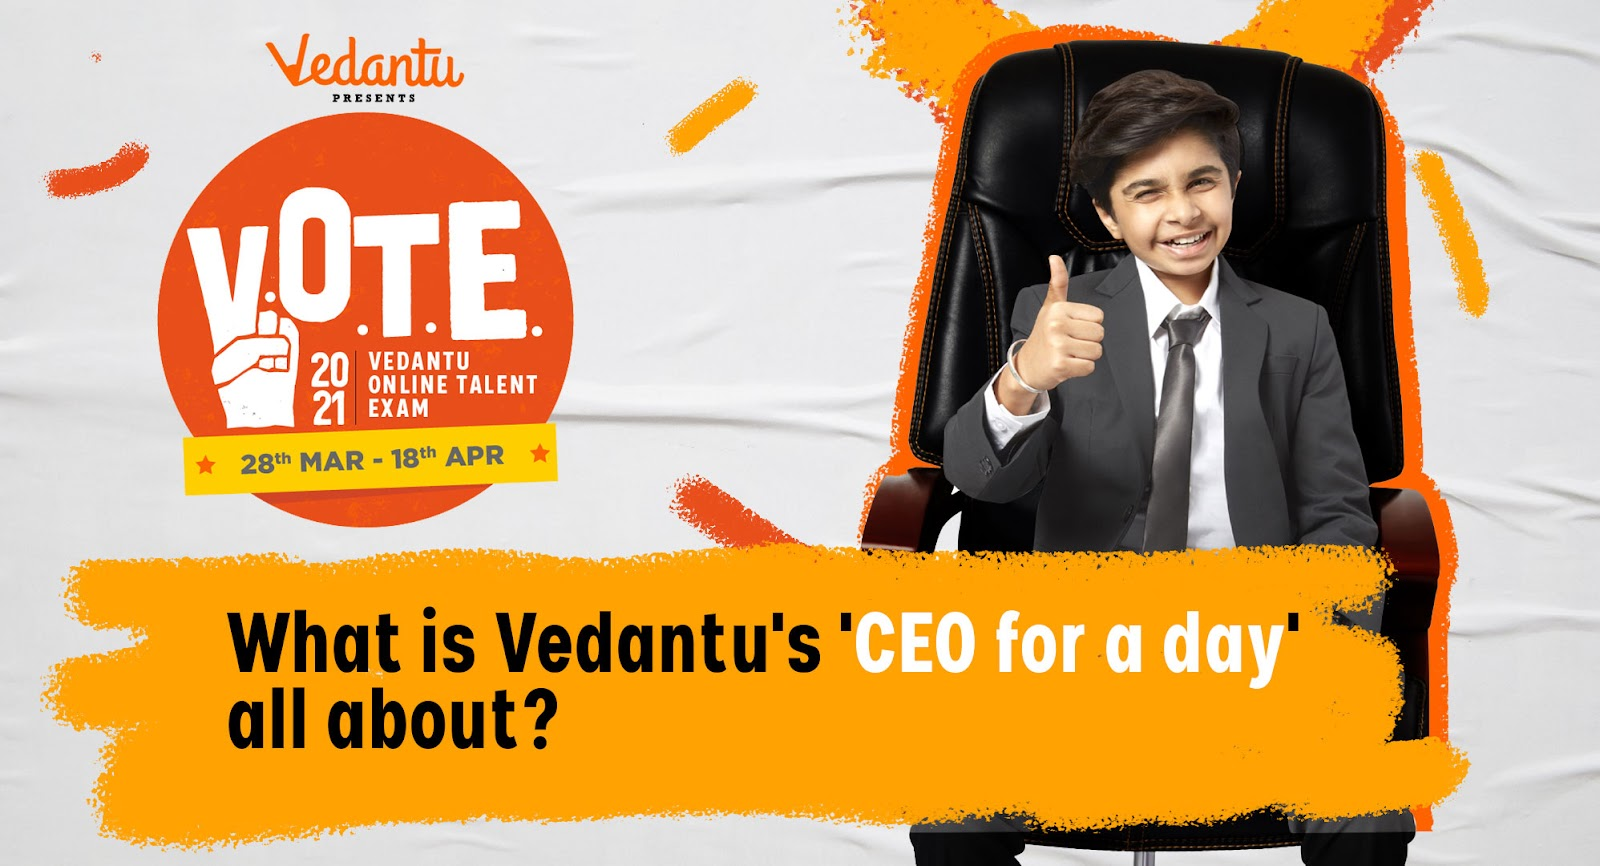 What is Vedantu's 'CEO for a Day' Programme all about?